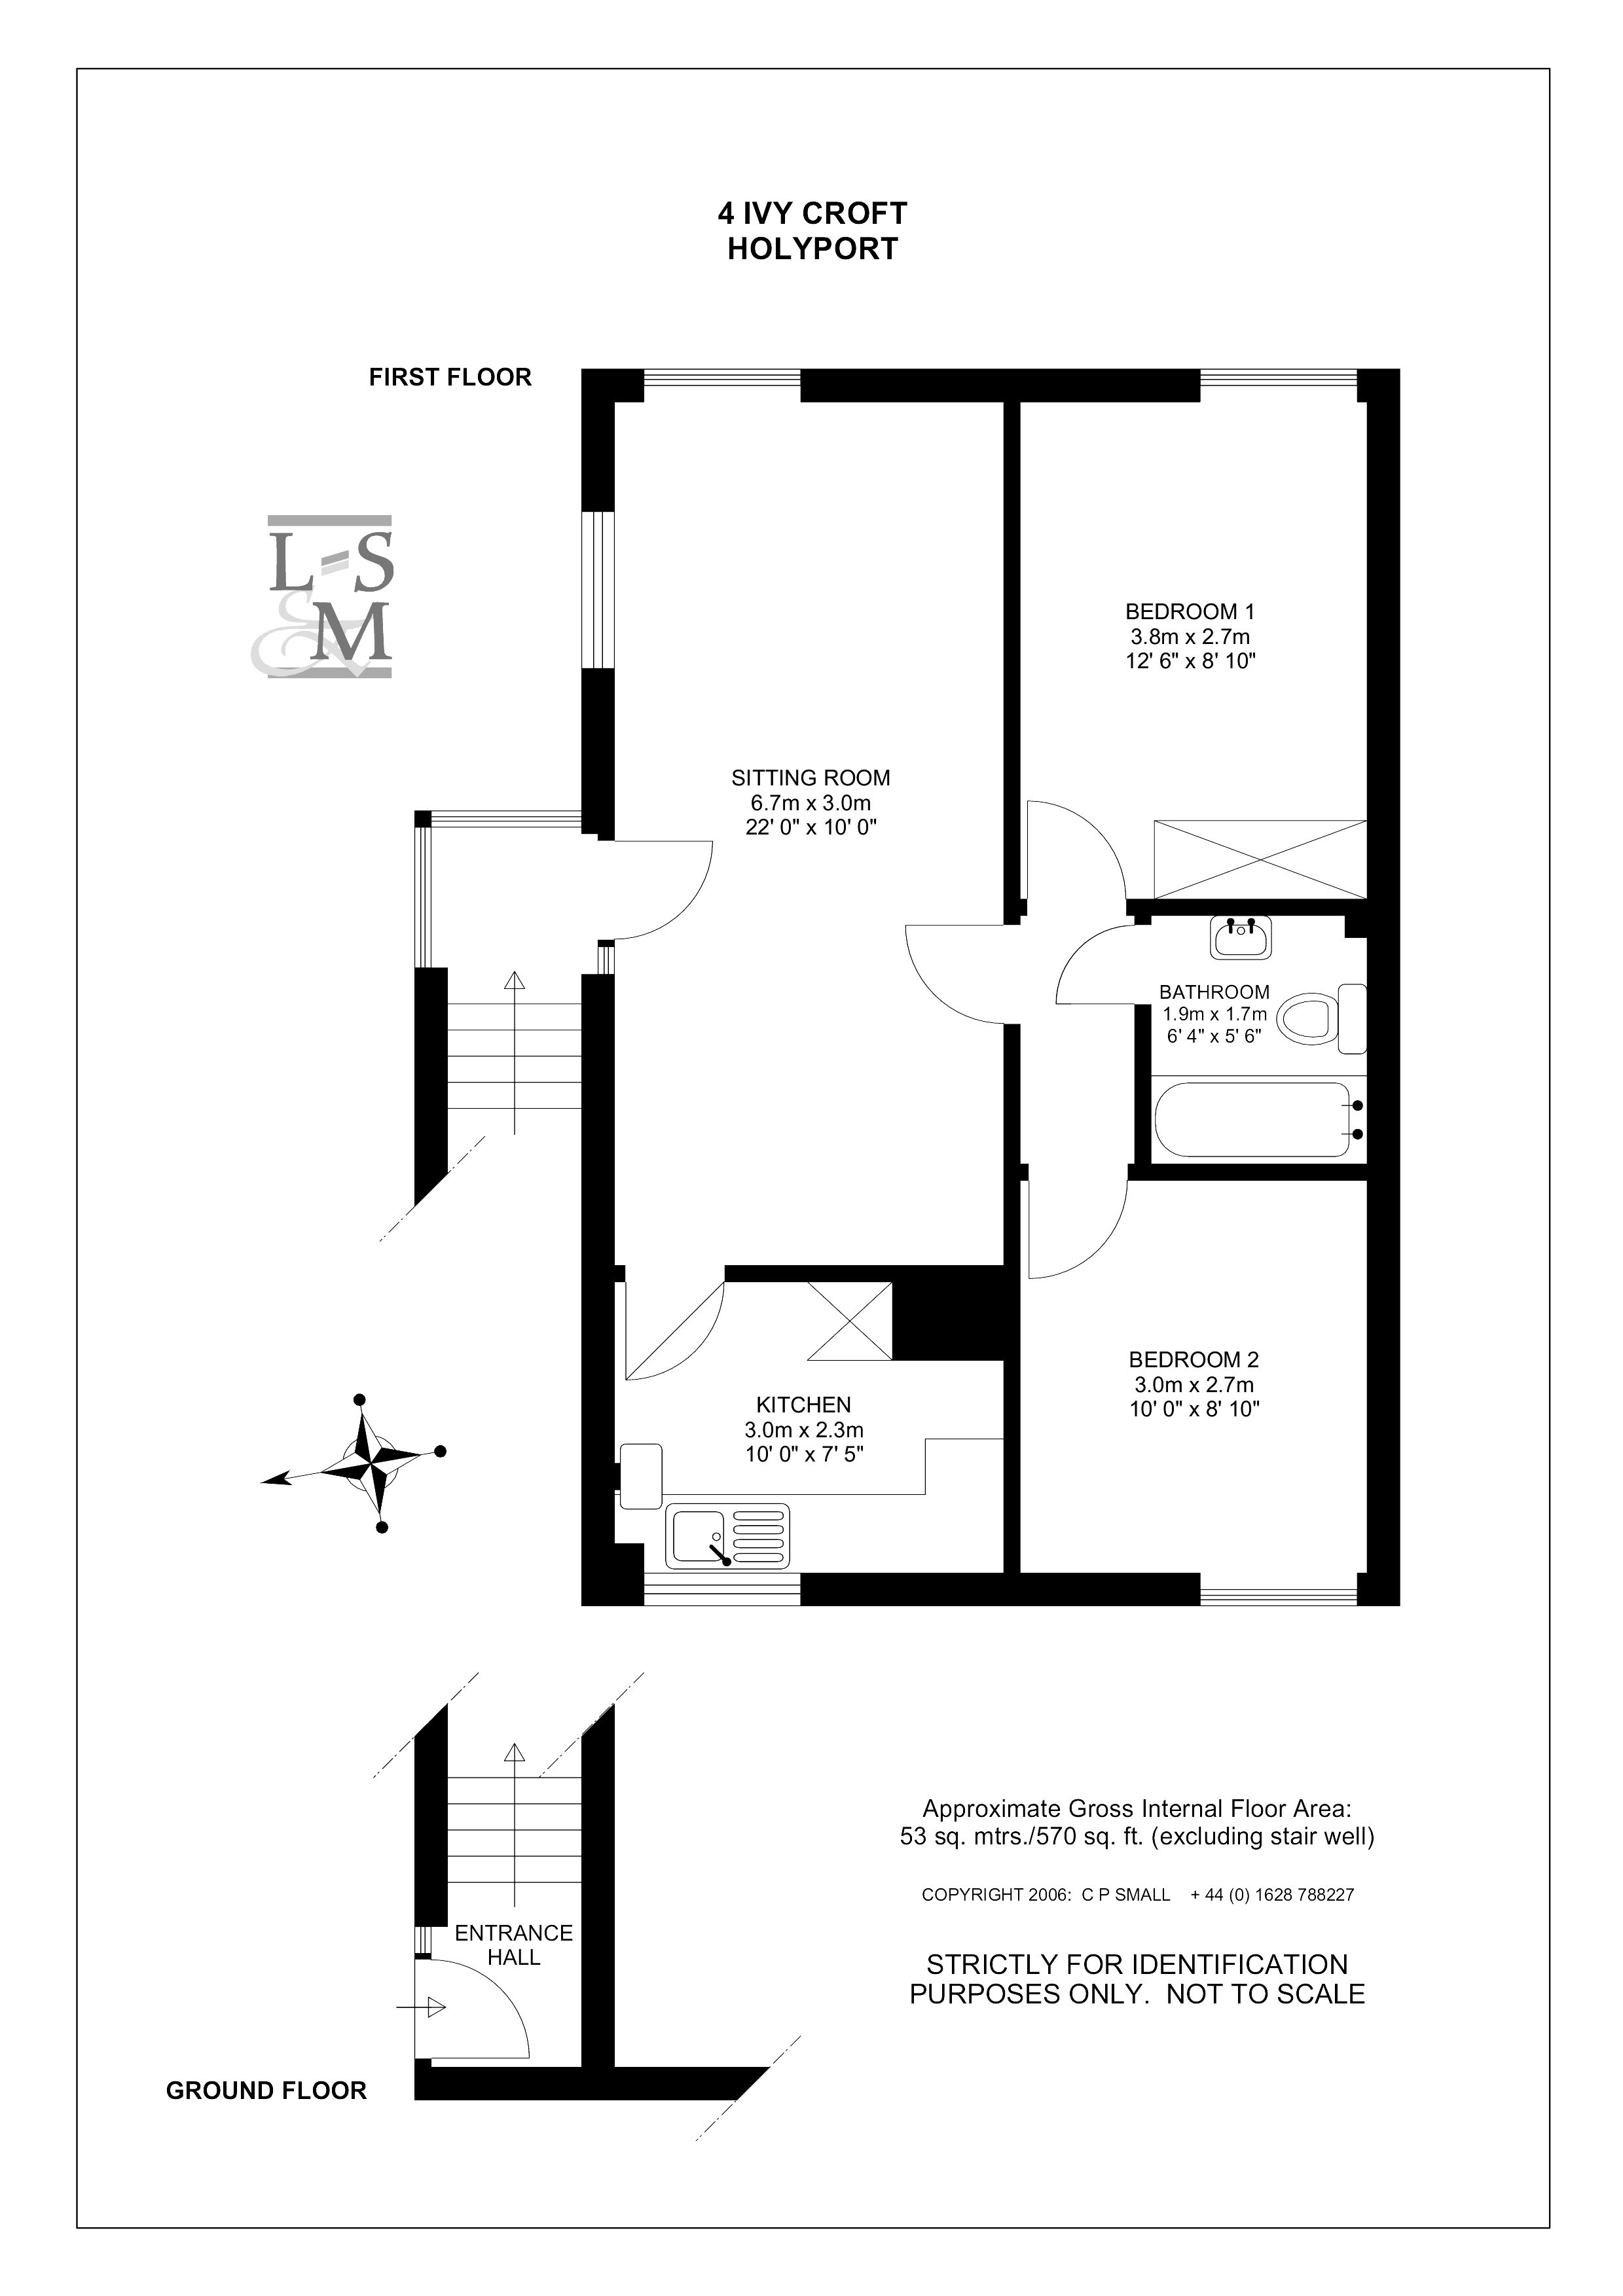 Floorplans For Ivycroft, Ivy Close, Moneyrow Green, Holyport